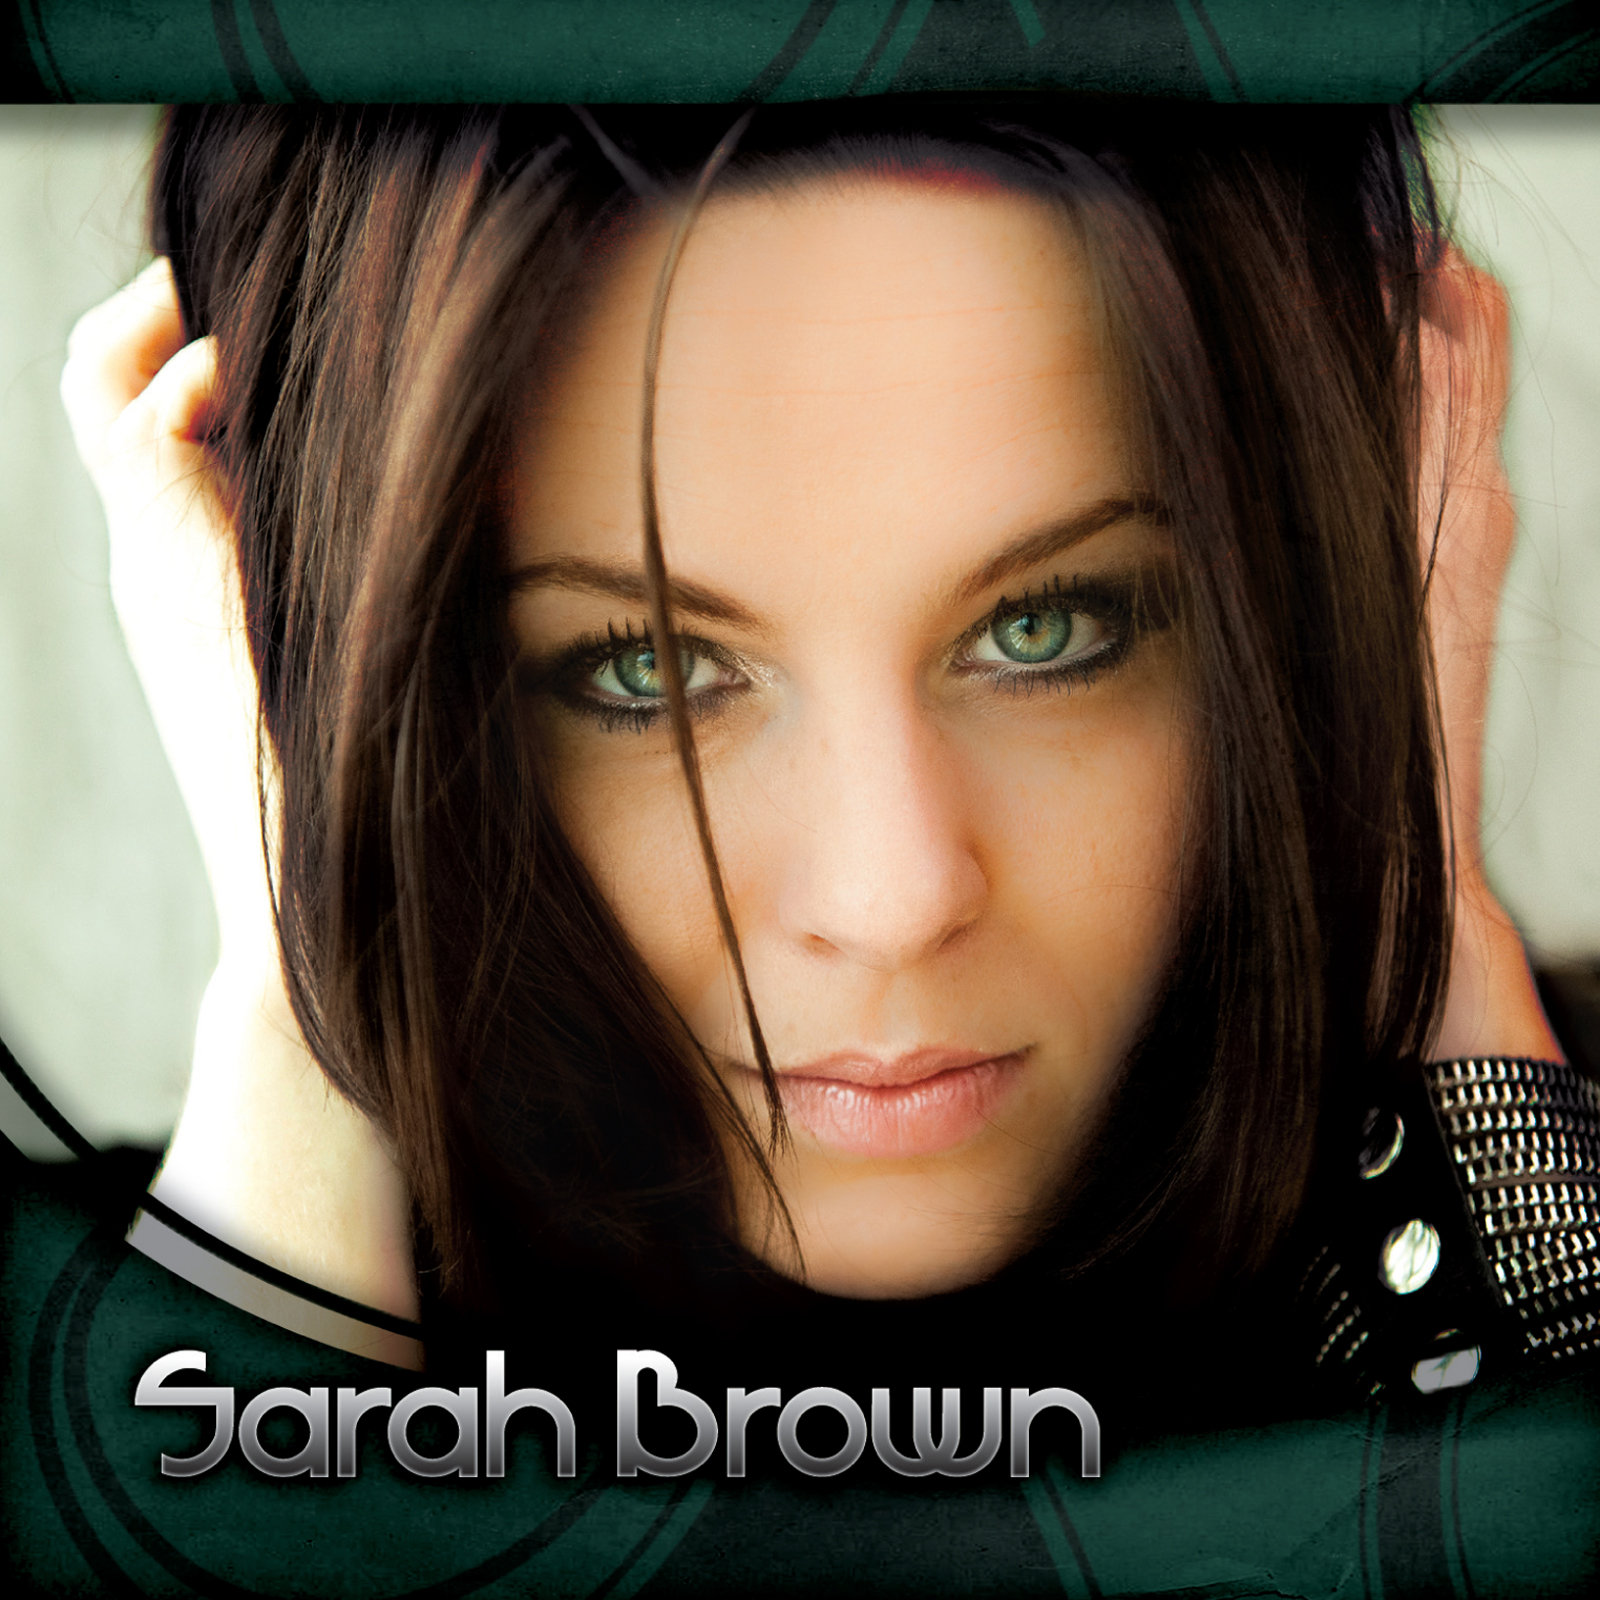 SarahBrownFront.jpg